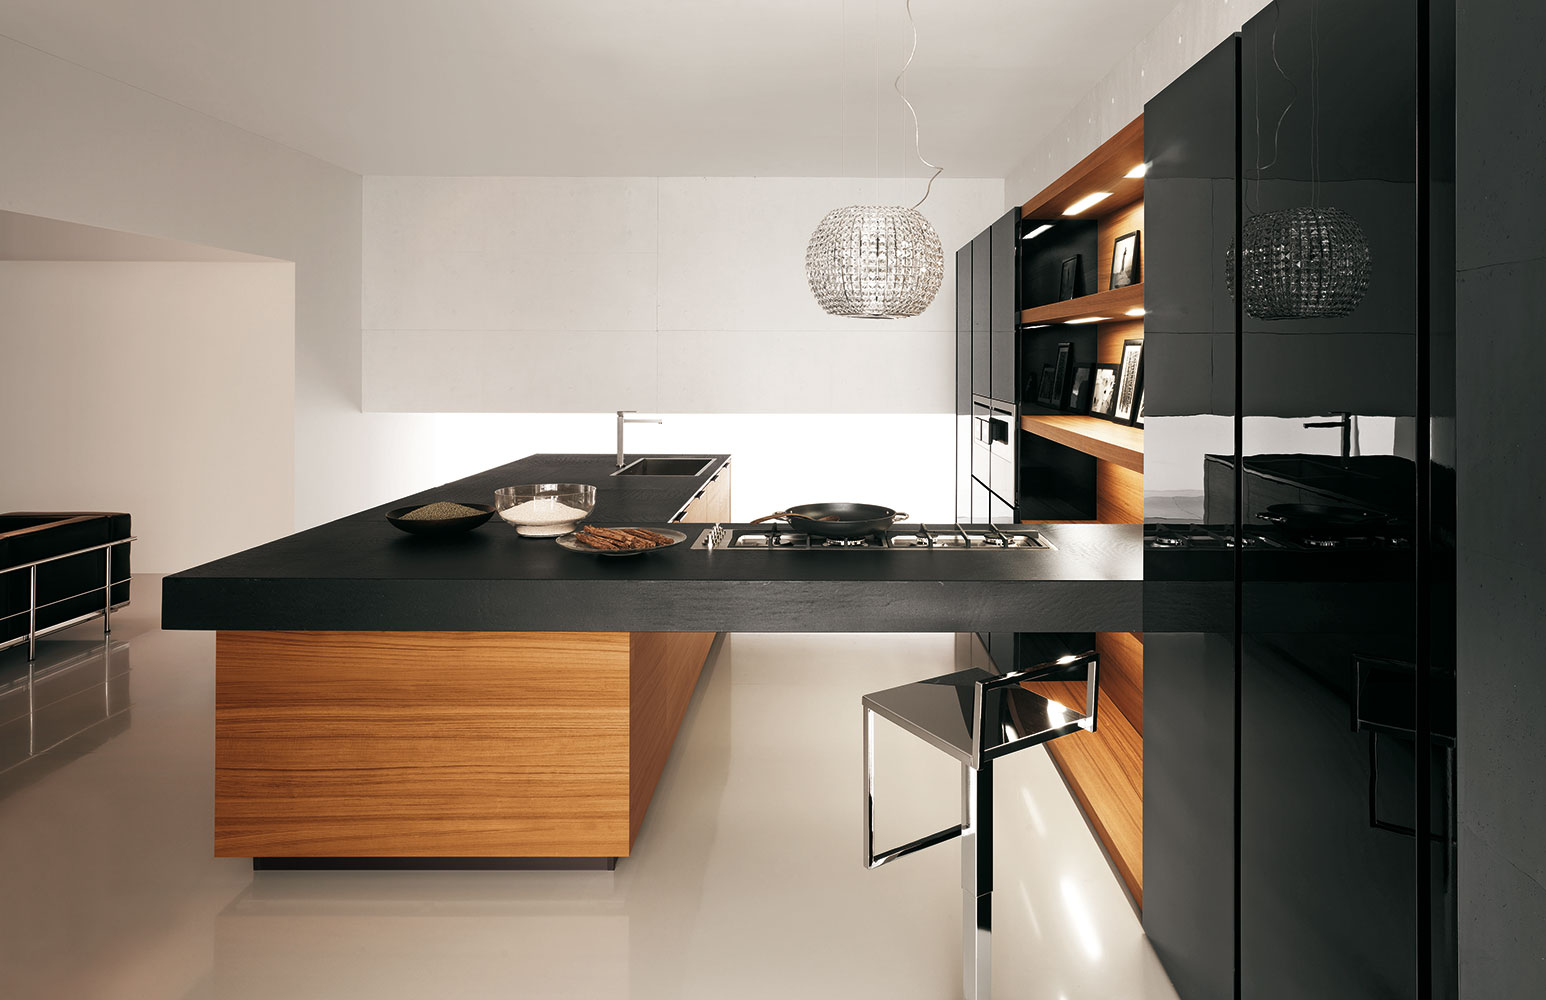 excoffier cuisine a lyon decouvrez nos gammes de cuisine sur mesure. Black Bedroom Furniture Sets. Home Design Ideas